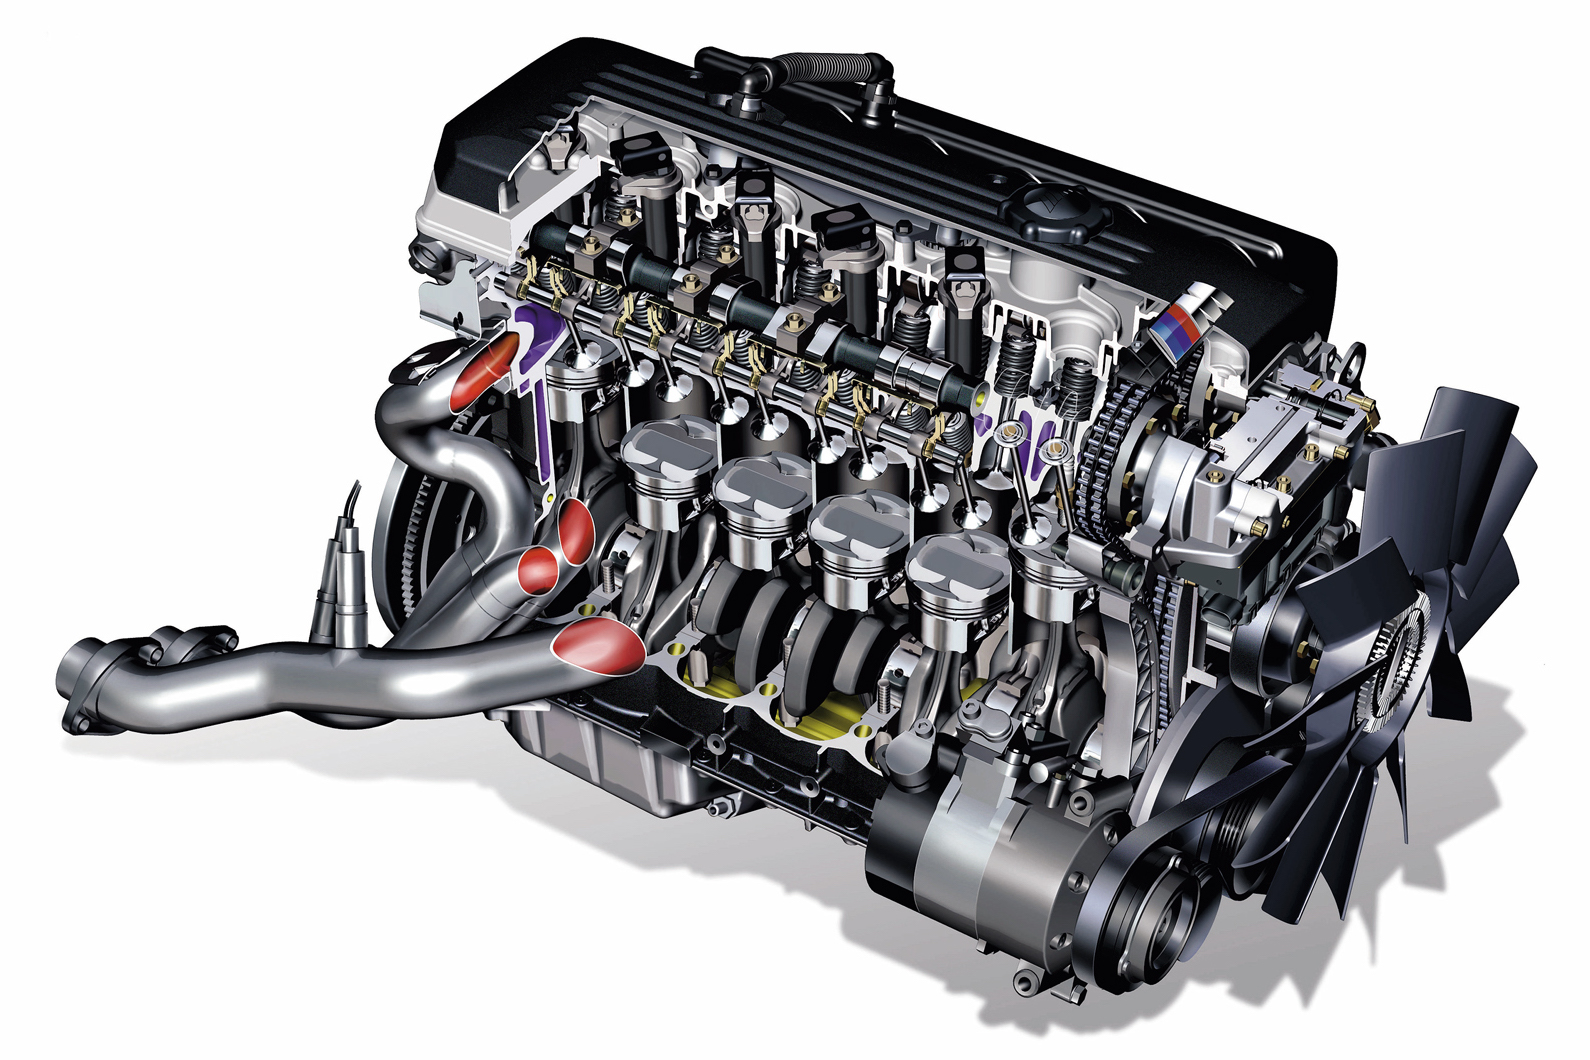 S54 BMW Engine